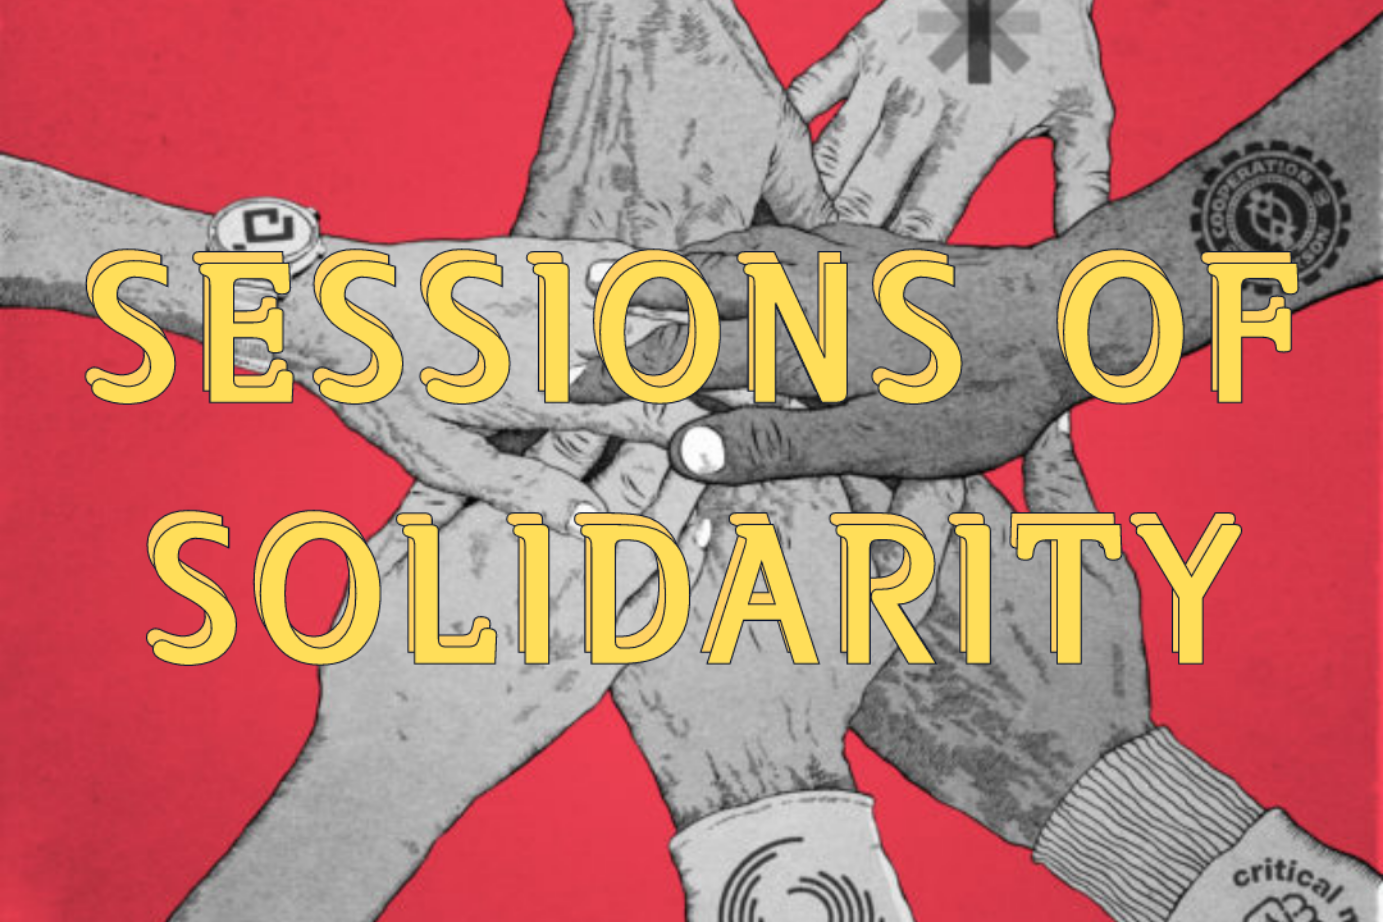 Support Group Sessions of Solidarity